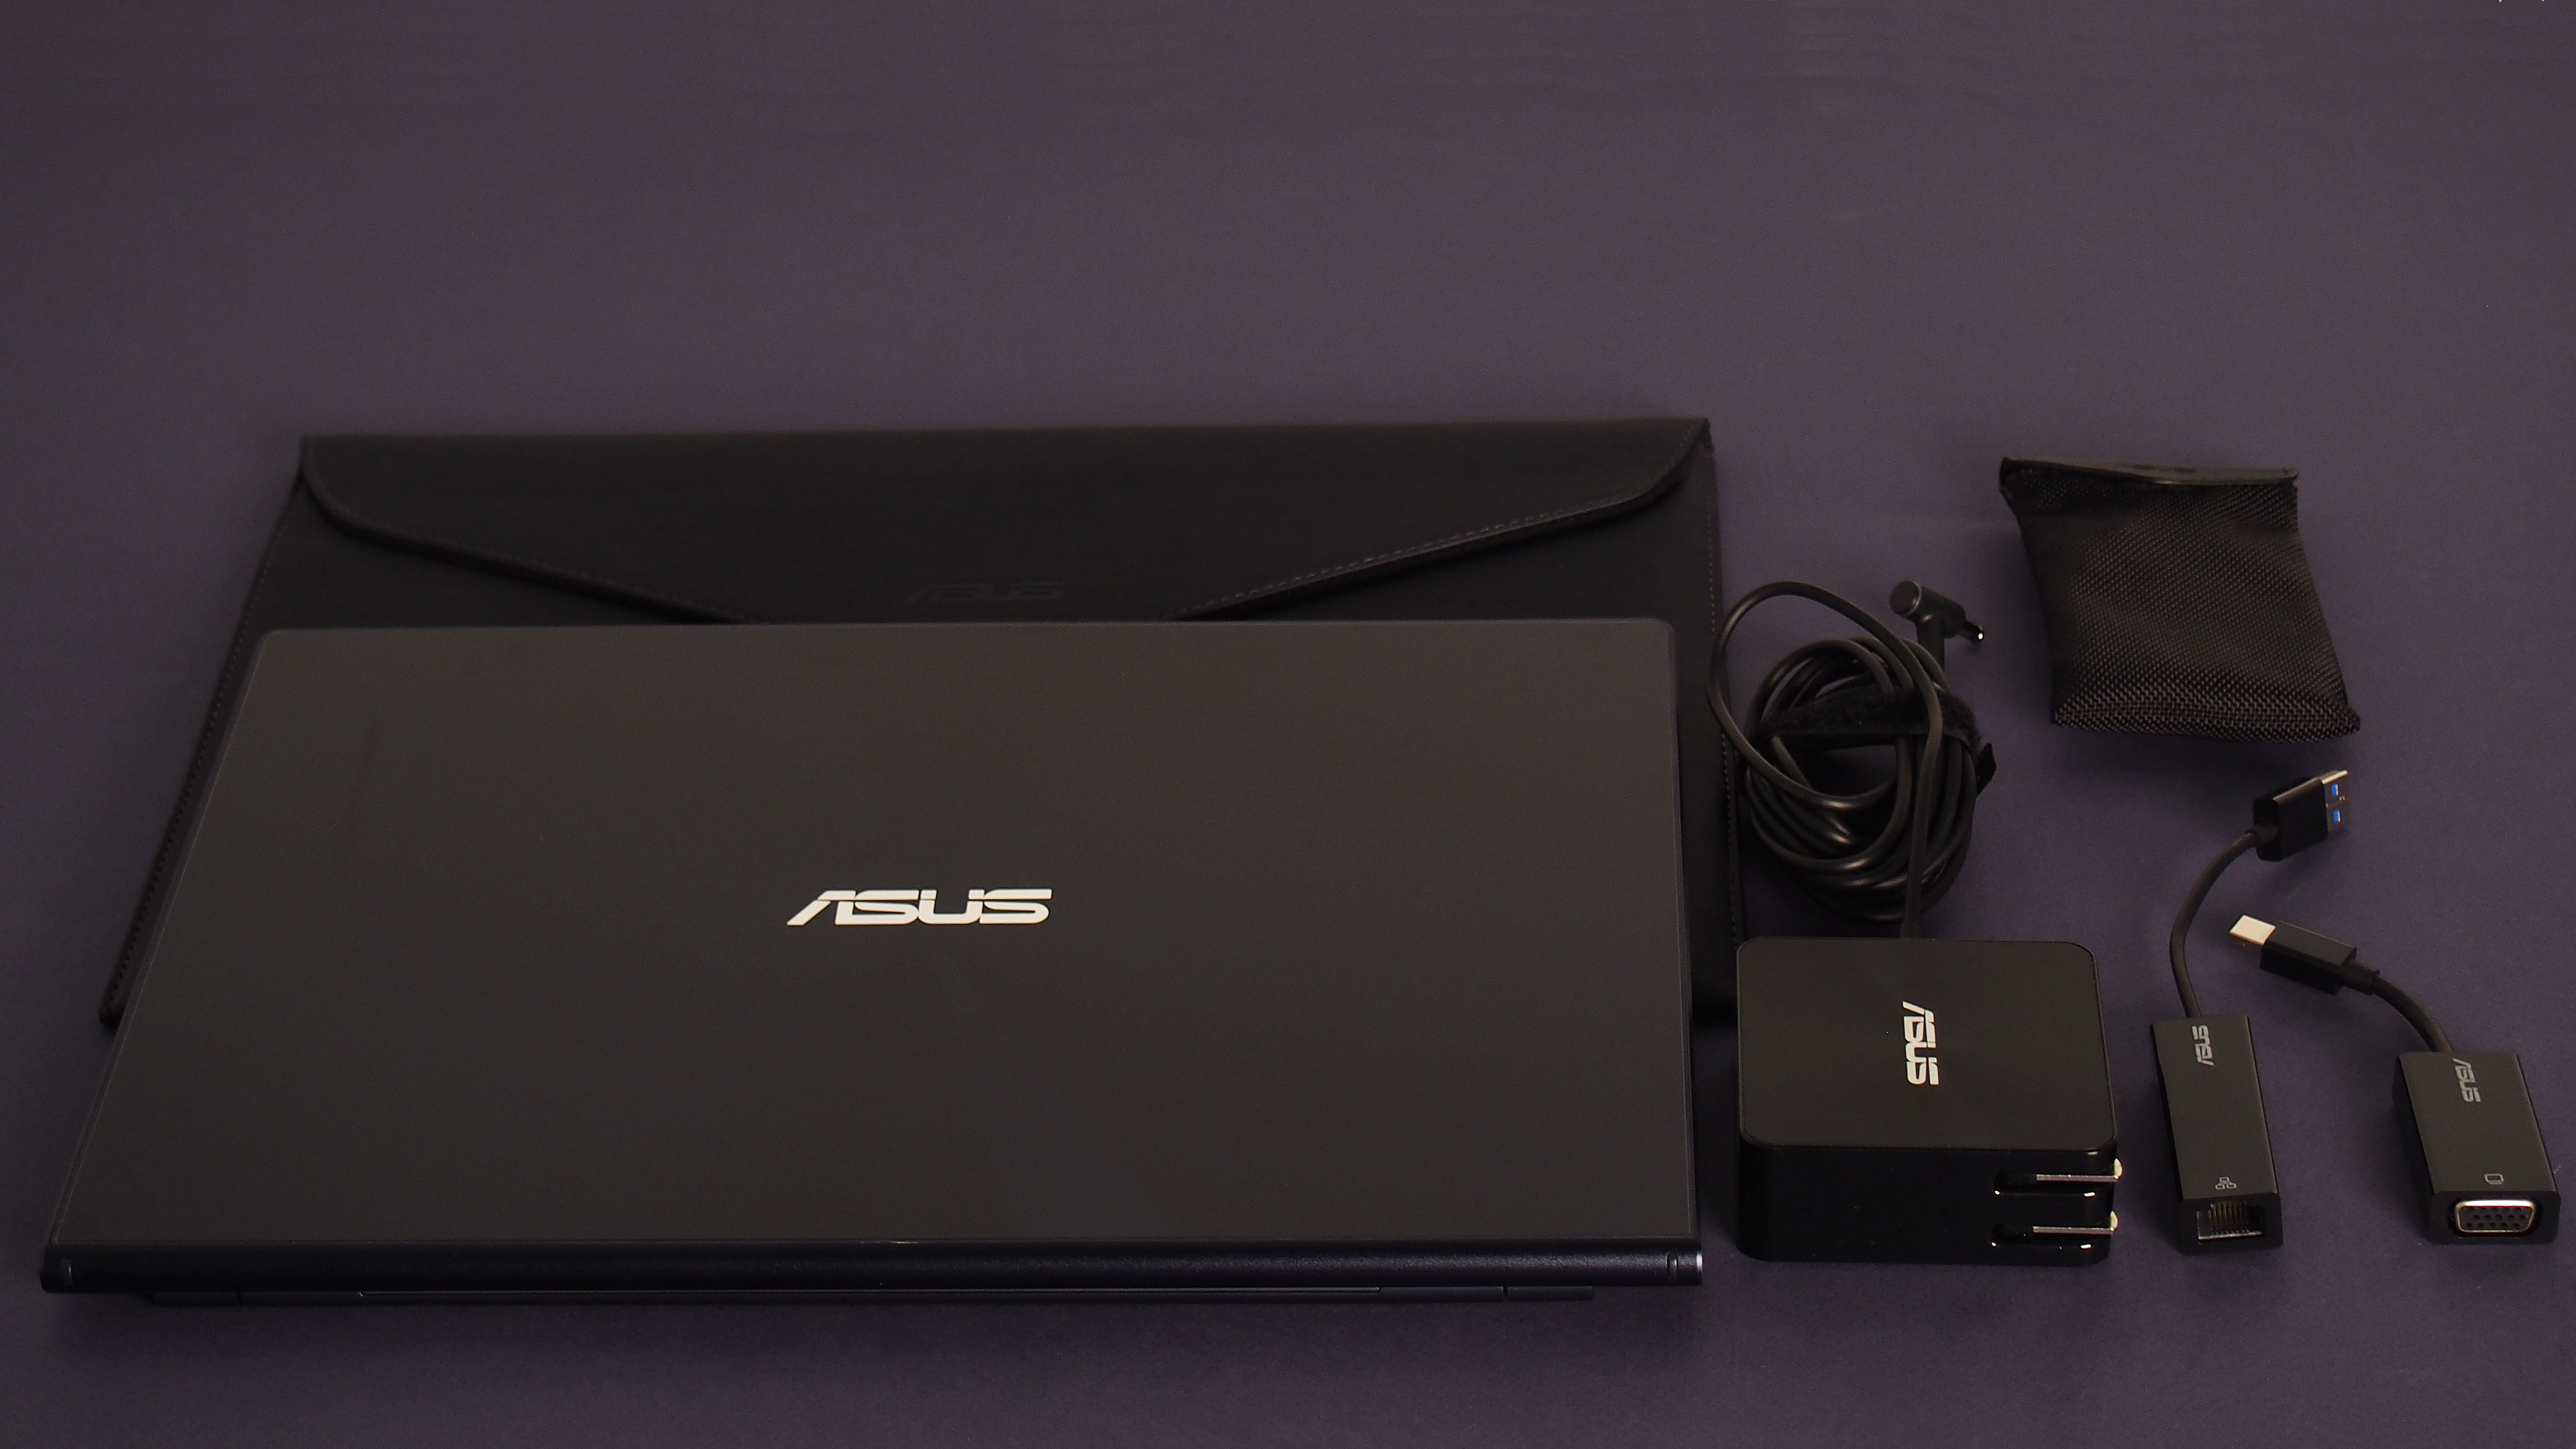 The UX301LA comes with a leather pouch, a charger, a VGA adapter cable, and an ethernet adapter cable.